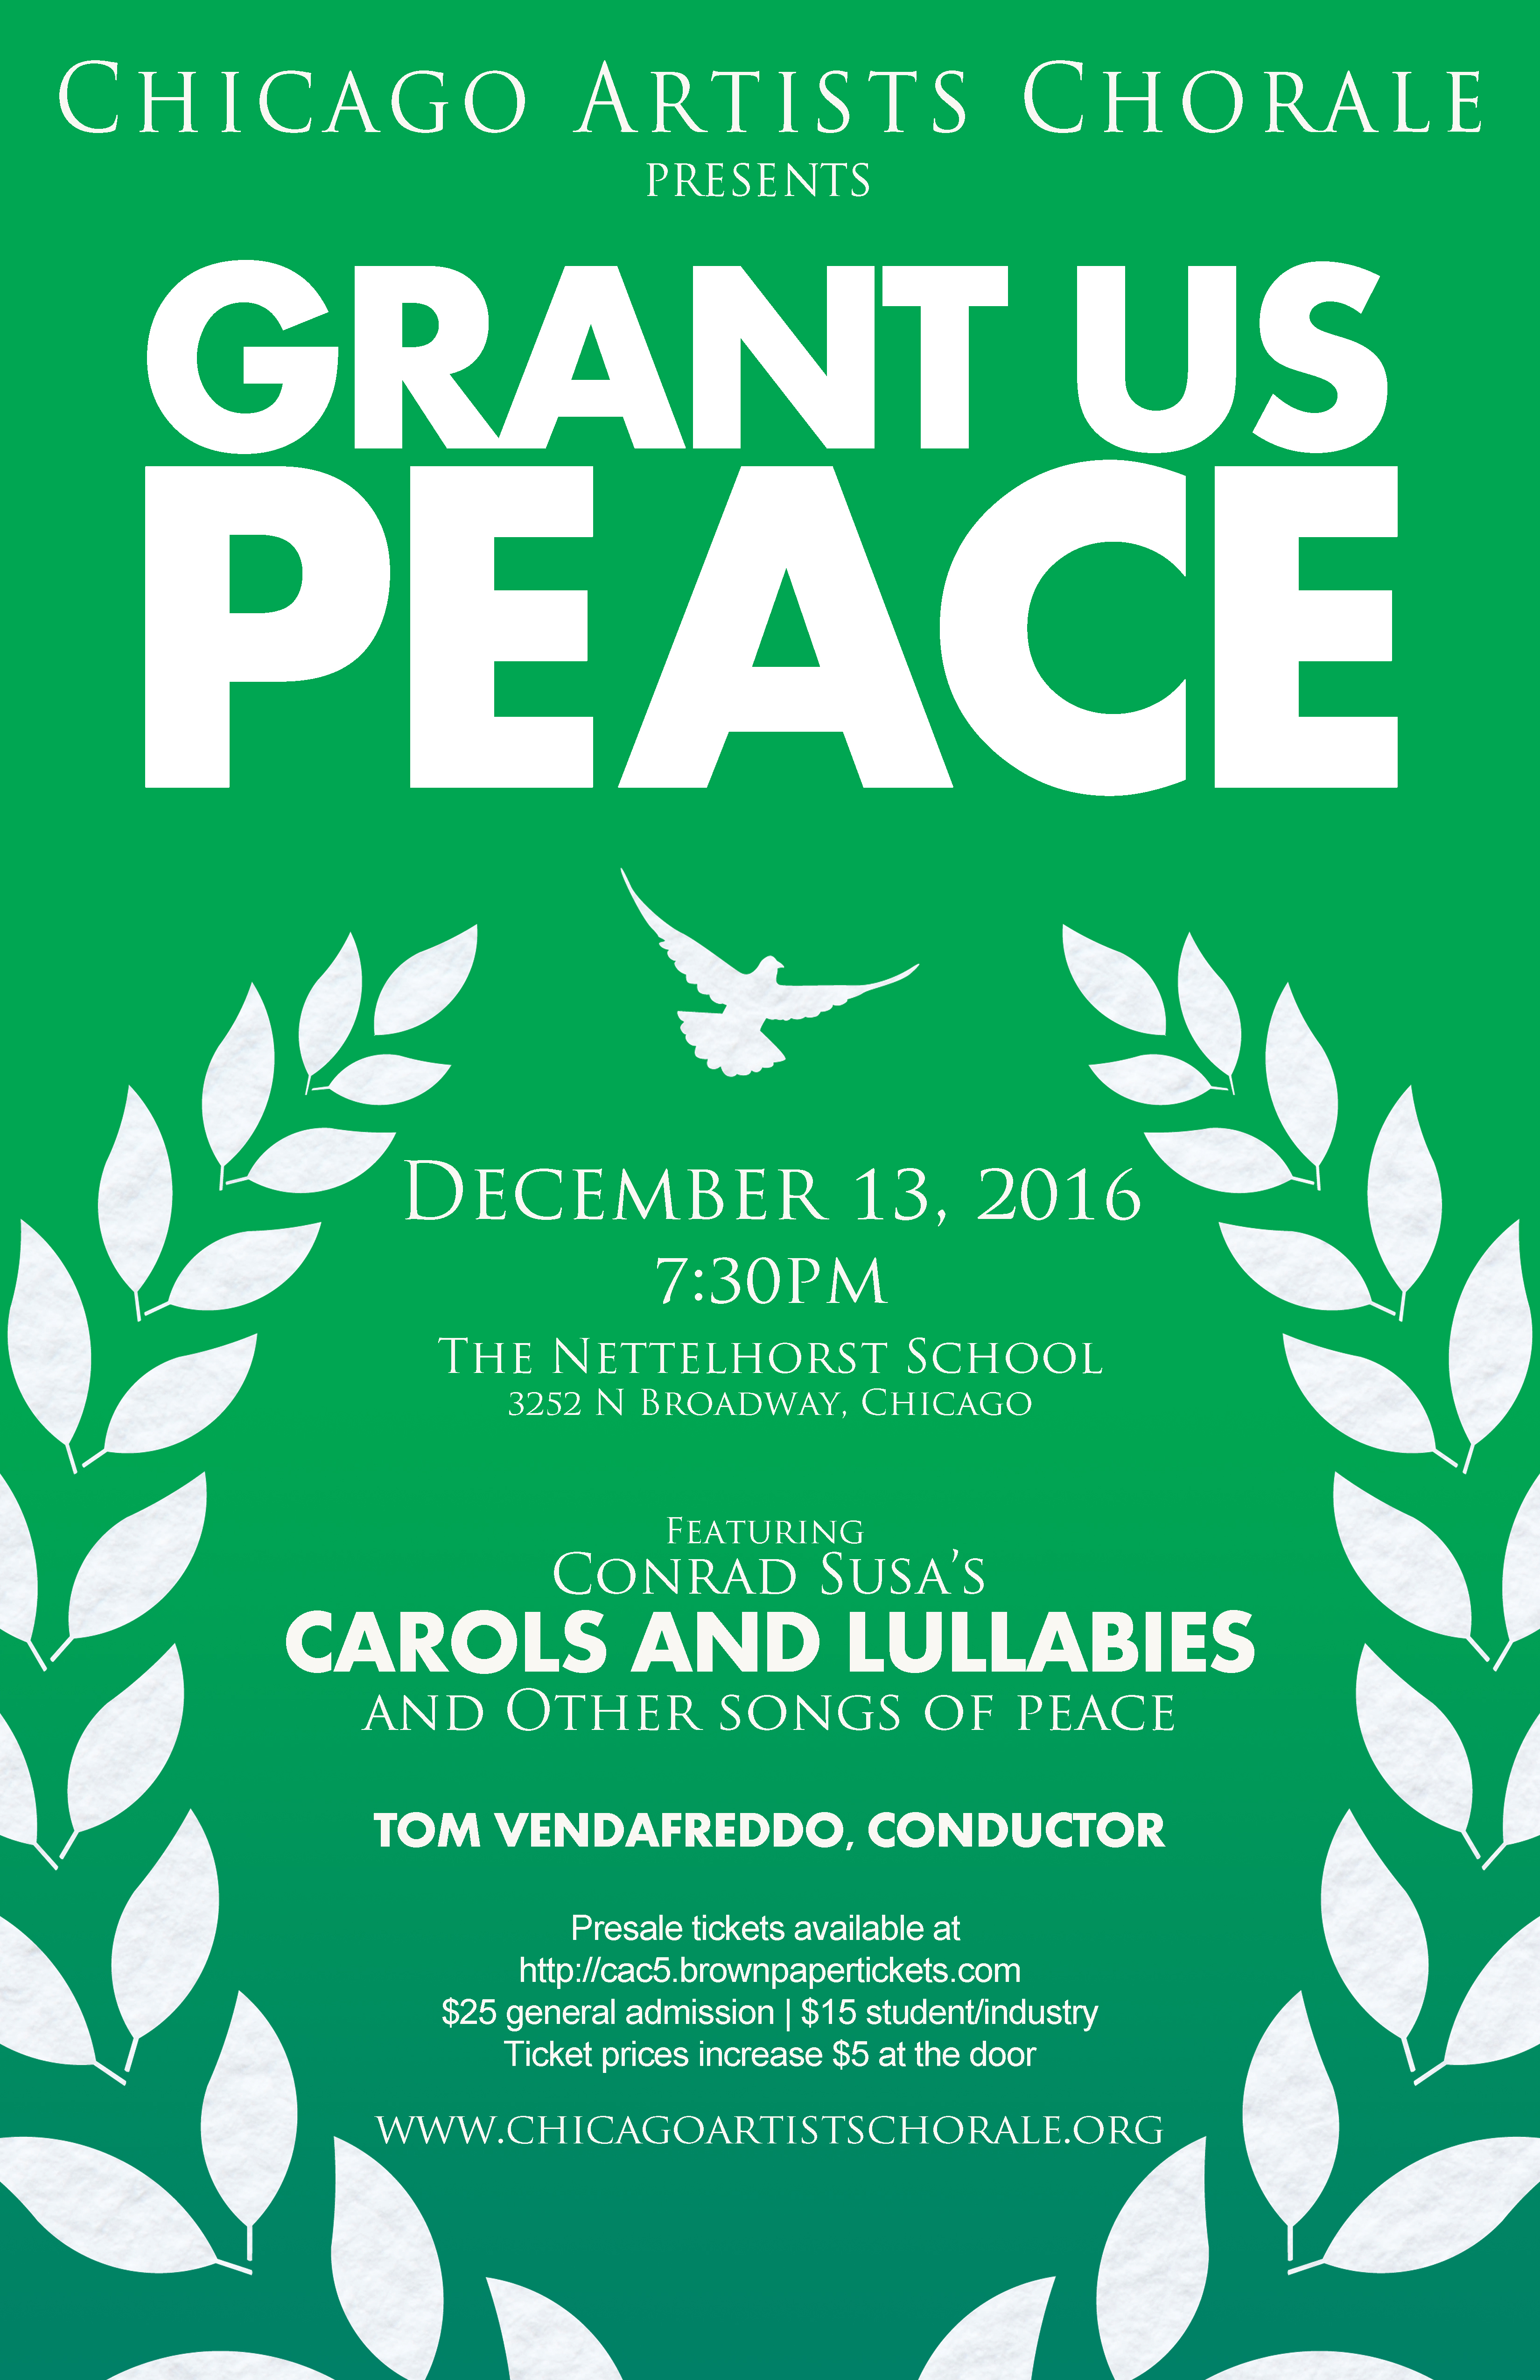 Concert poster with green background and featuring a white laurel wreath and dove.